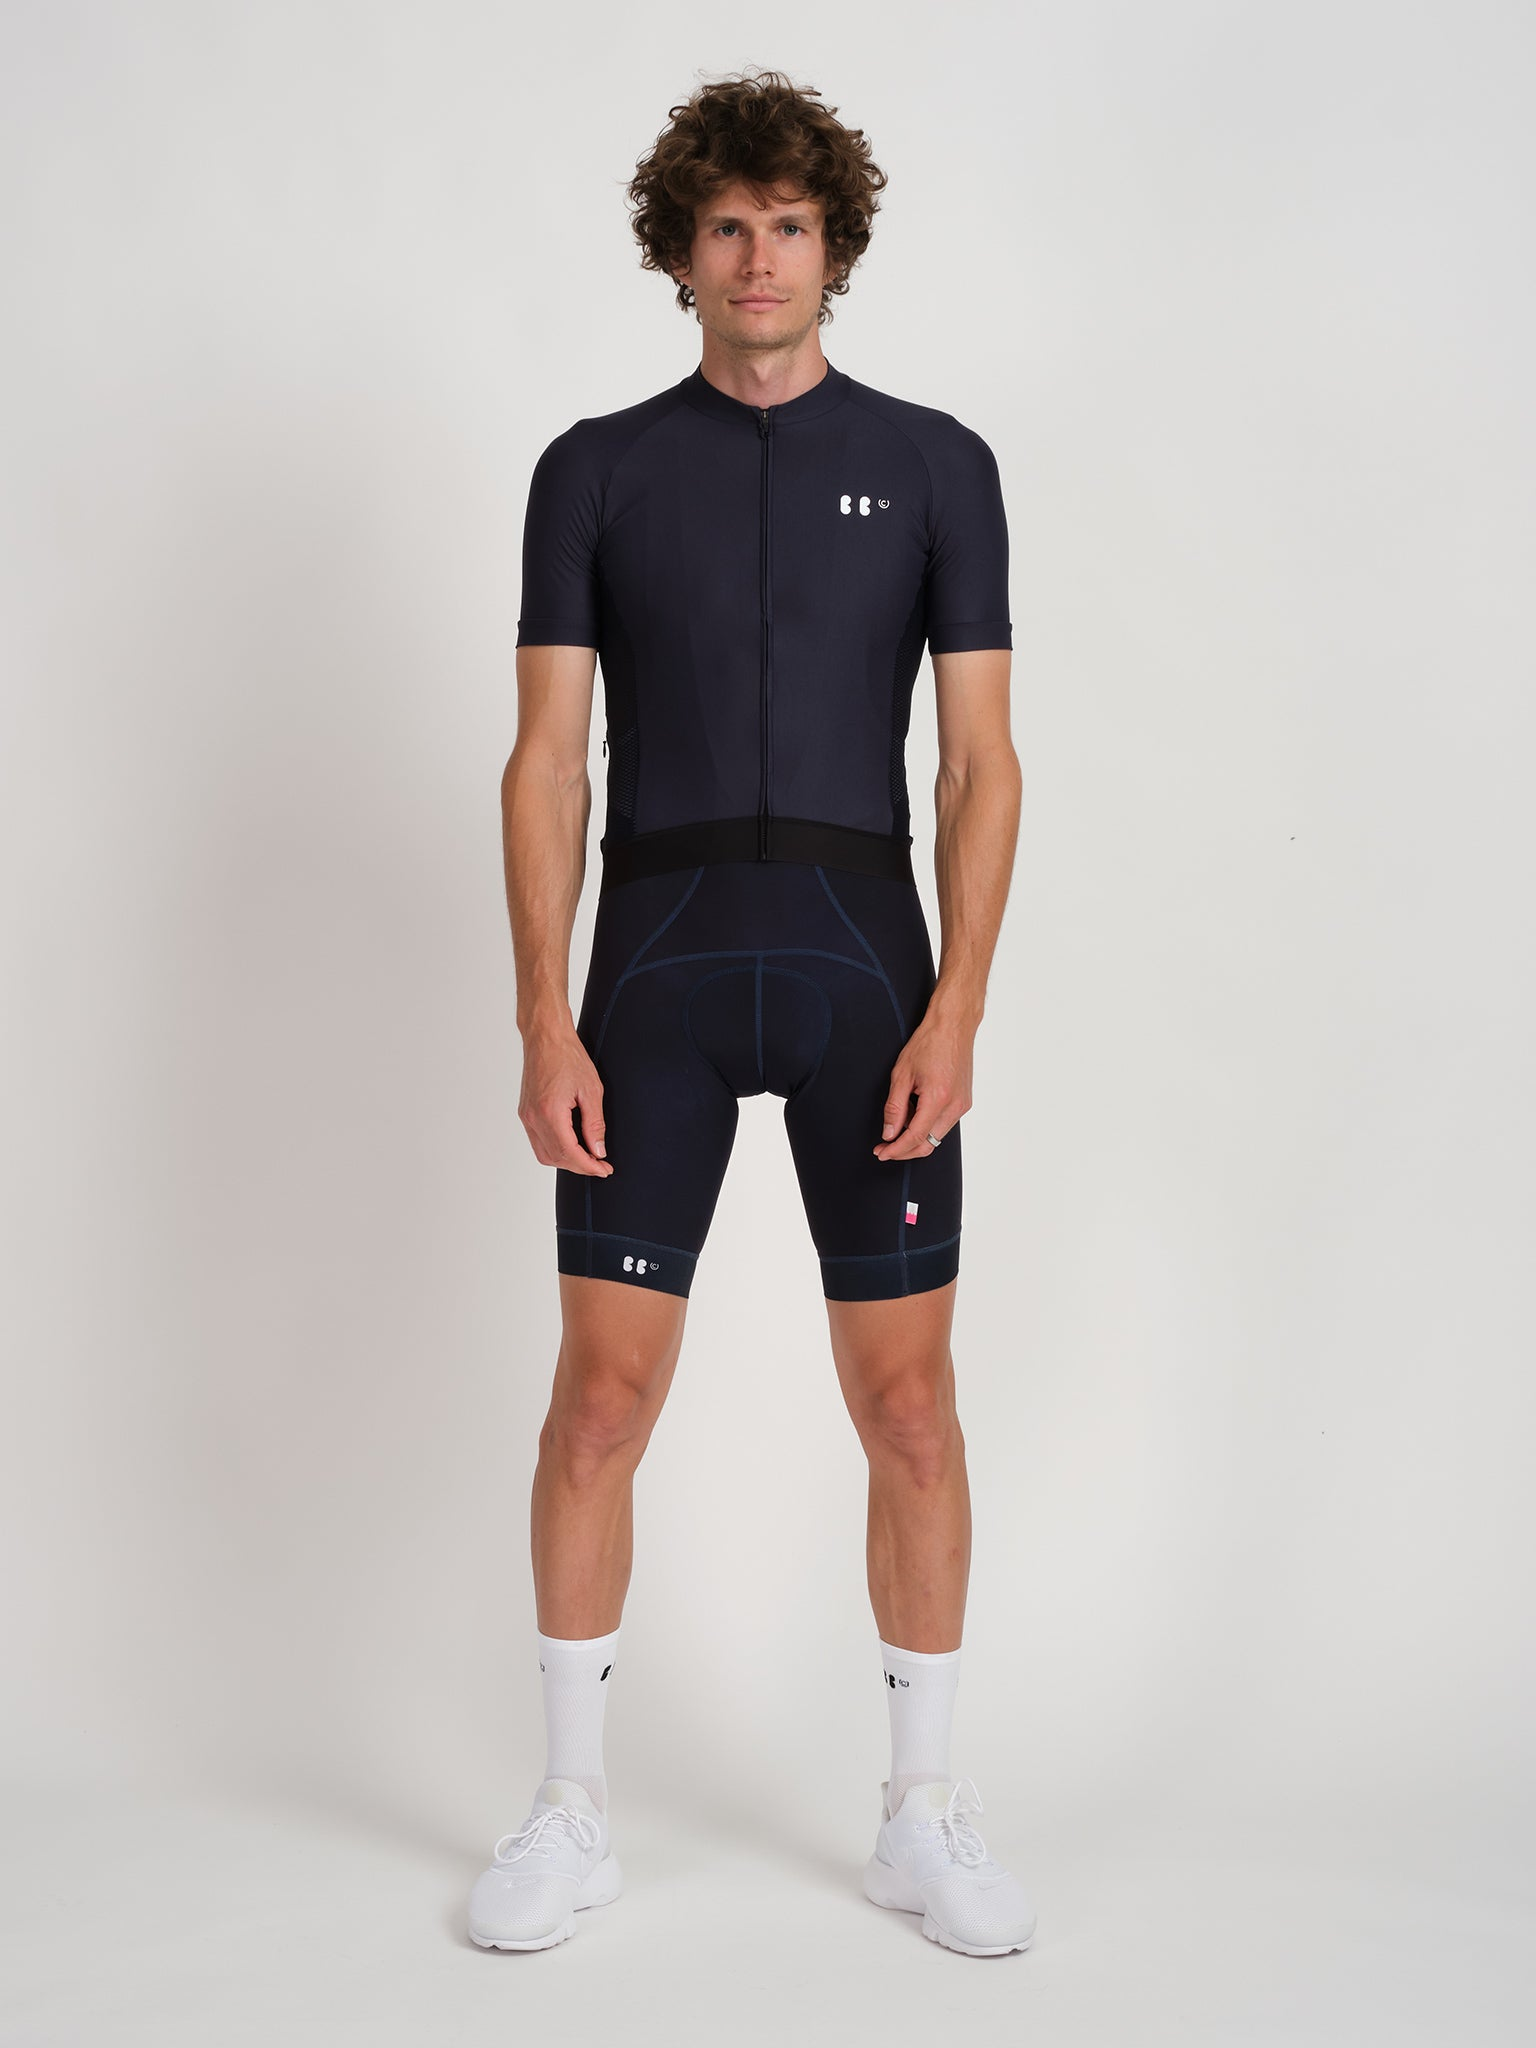 Male model wearing EDEO jersey in Navy with small BBUC logo in white on left chest